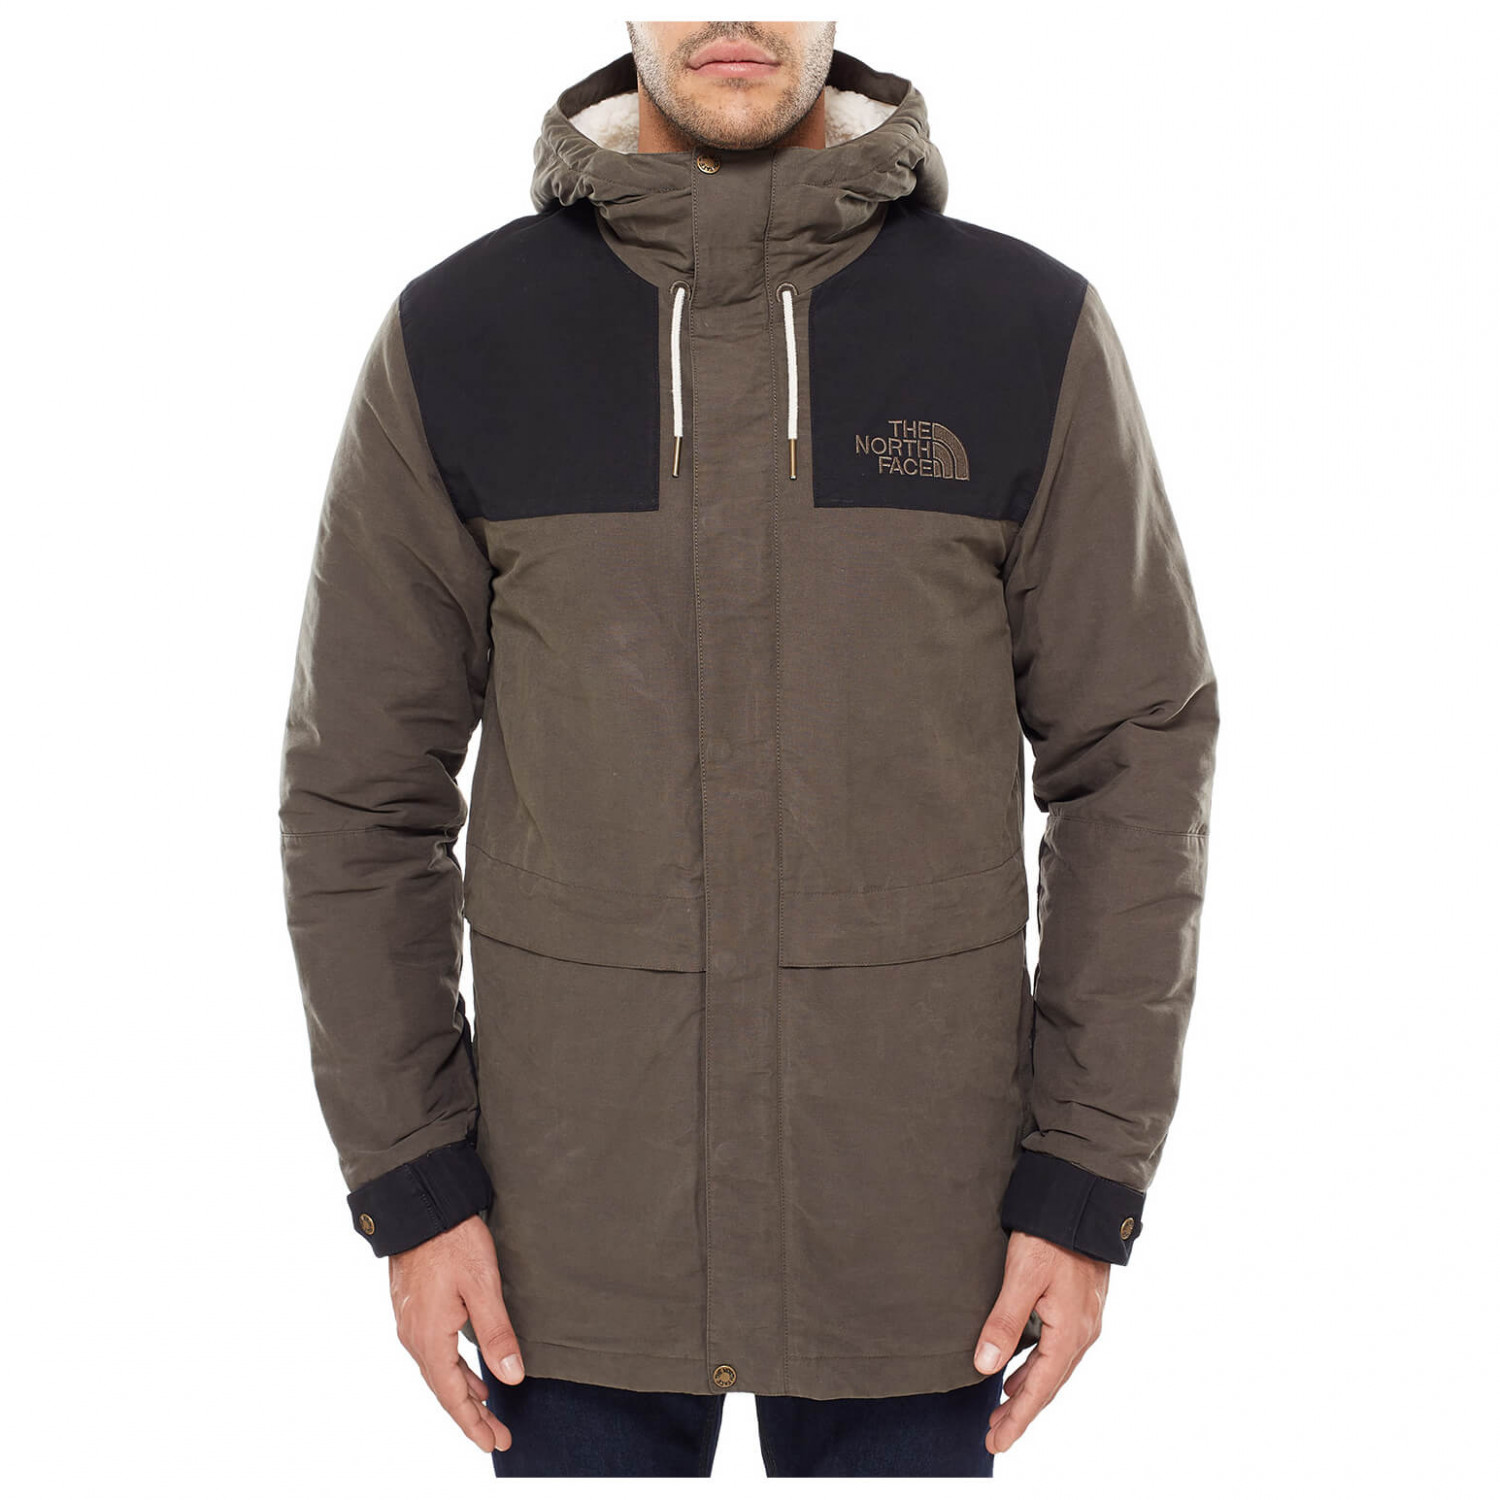 the north face 1985 sherpa mountain jacket mantel online kaufen. Black Bedroom Furniture Sets. Home Design Ideas